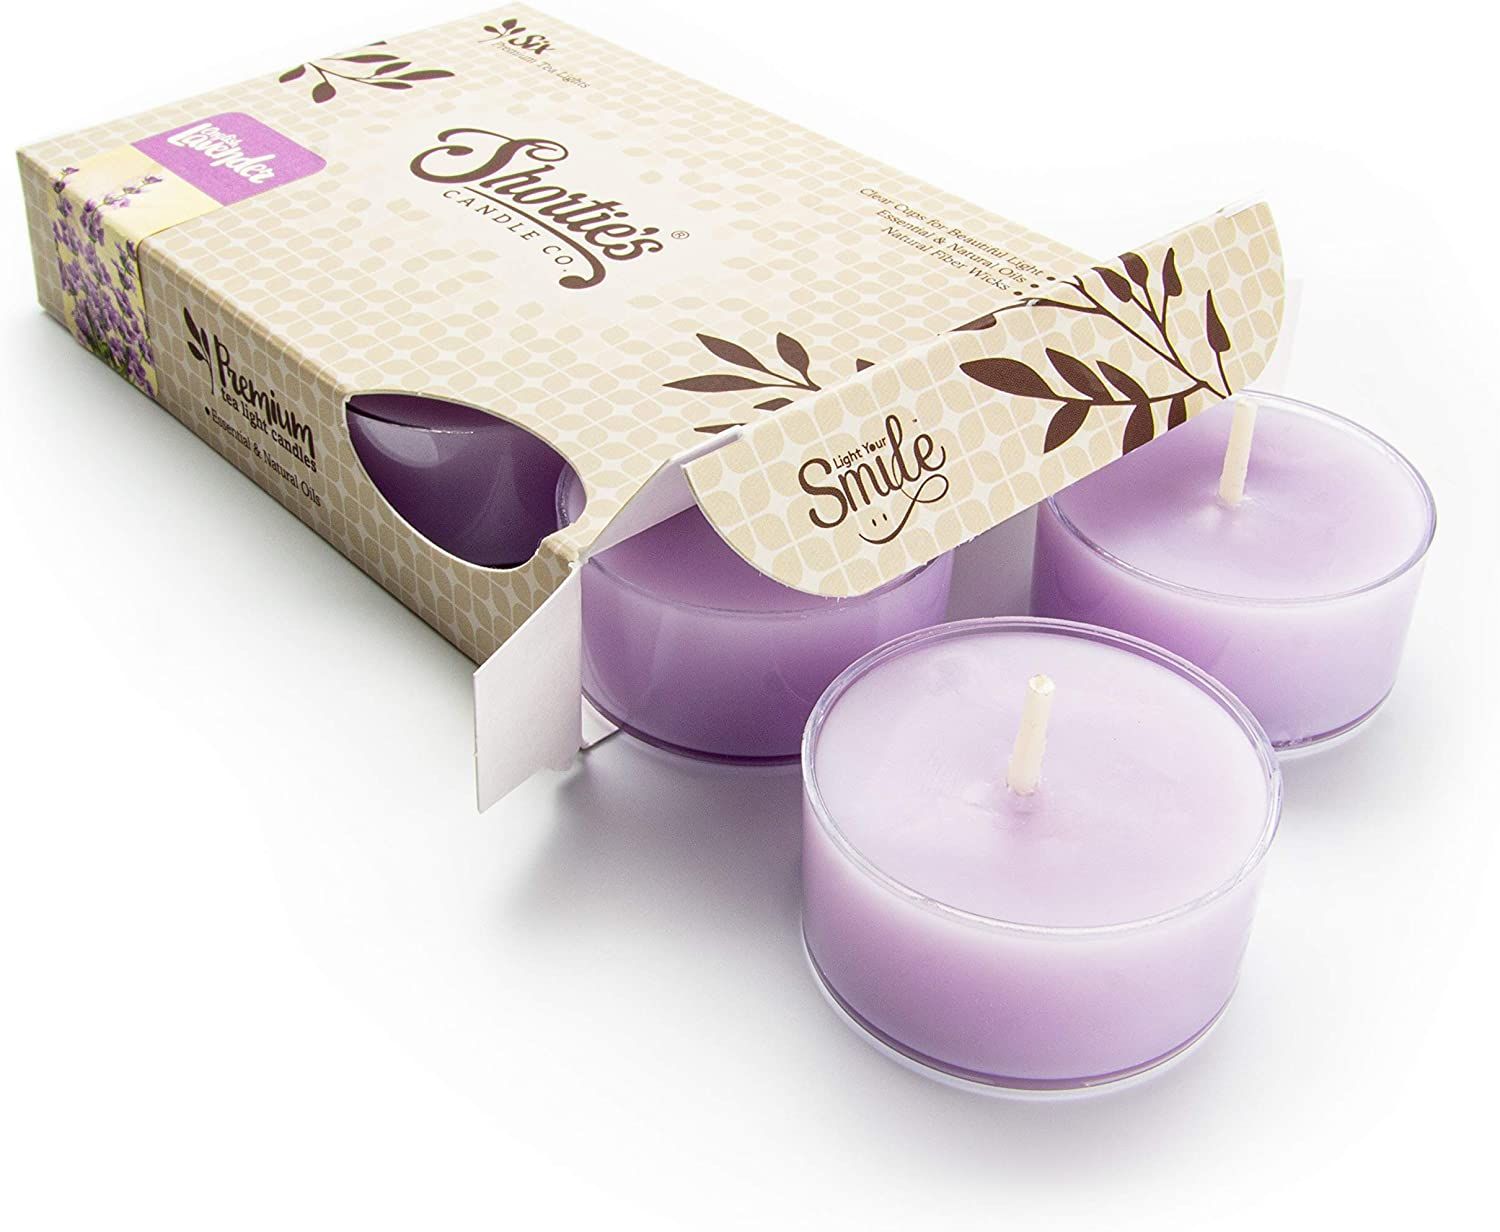 Pure English Lavender Tealight Candles Highly Ess Super beauty product restock quality Dedication top with Scented -